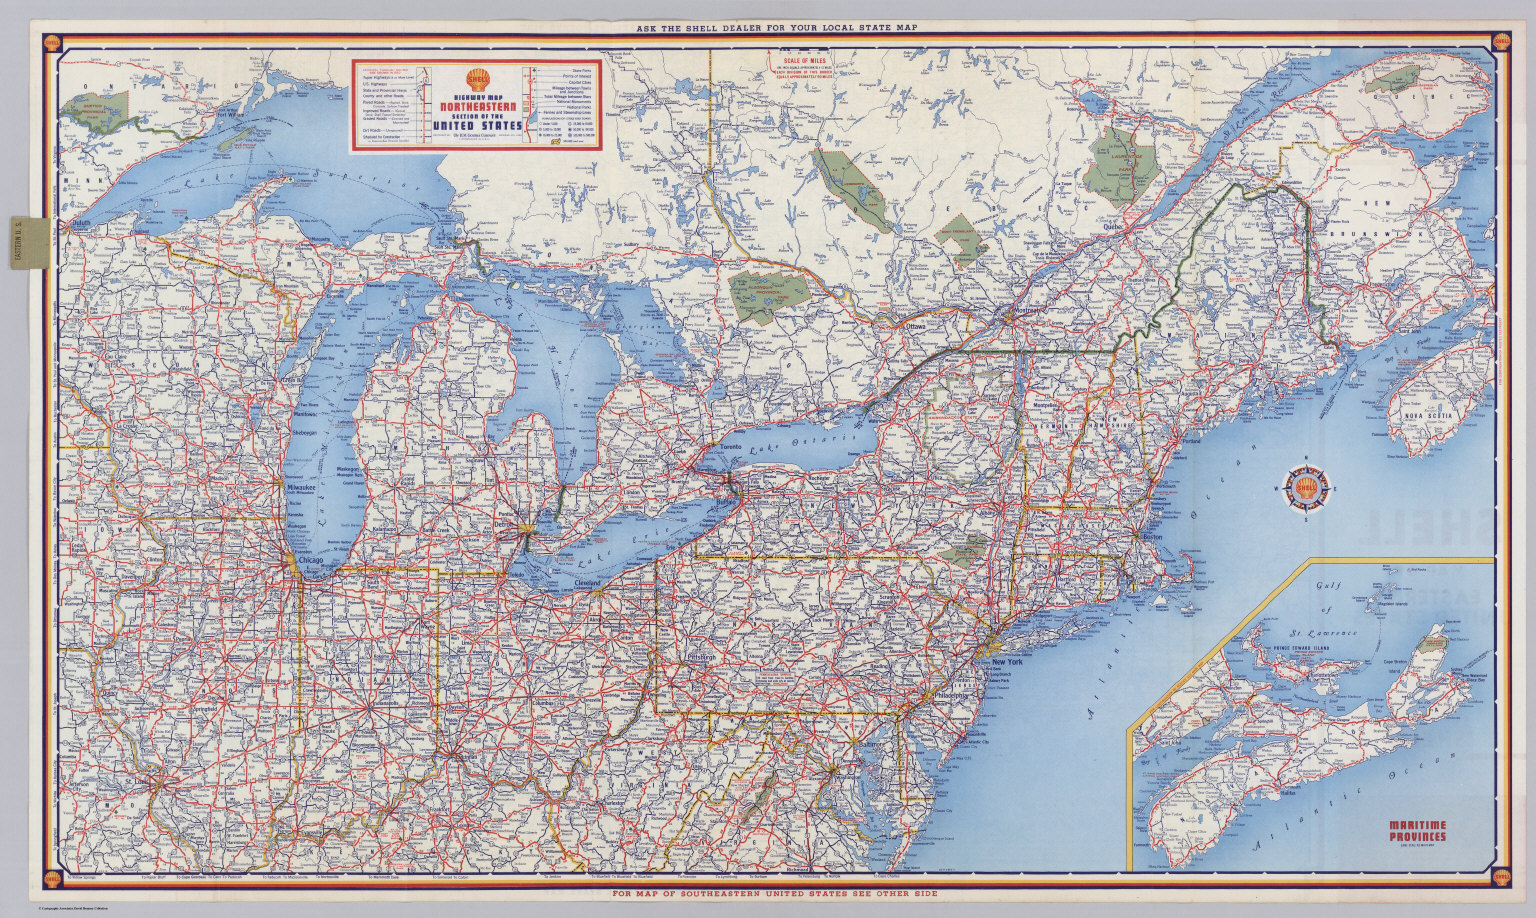 Shell Highway Map Northeastern Section Of The United States - Us road atlas map